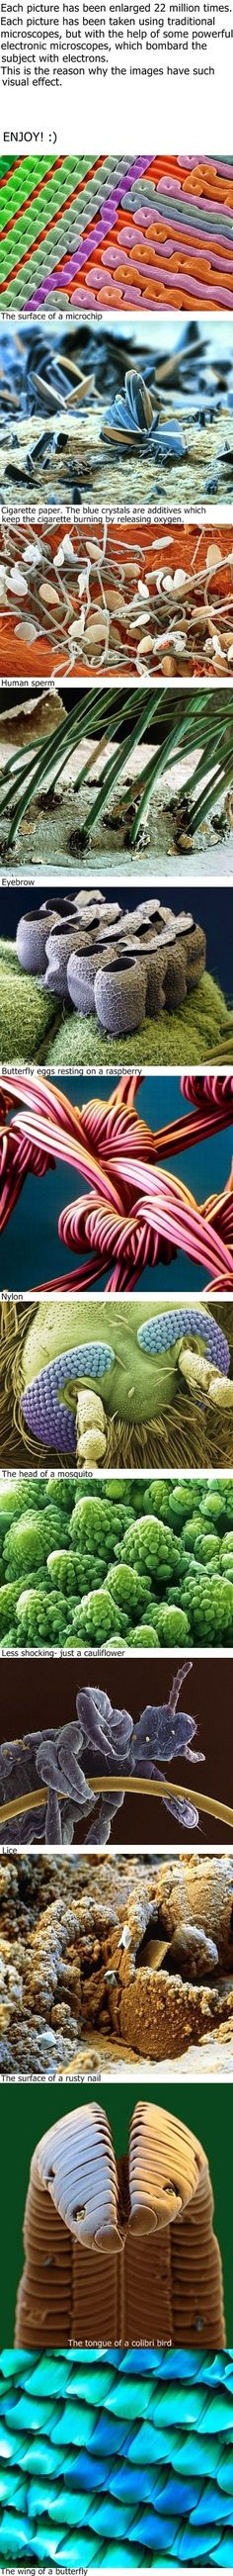 Microscopic world